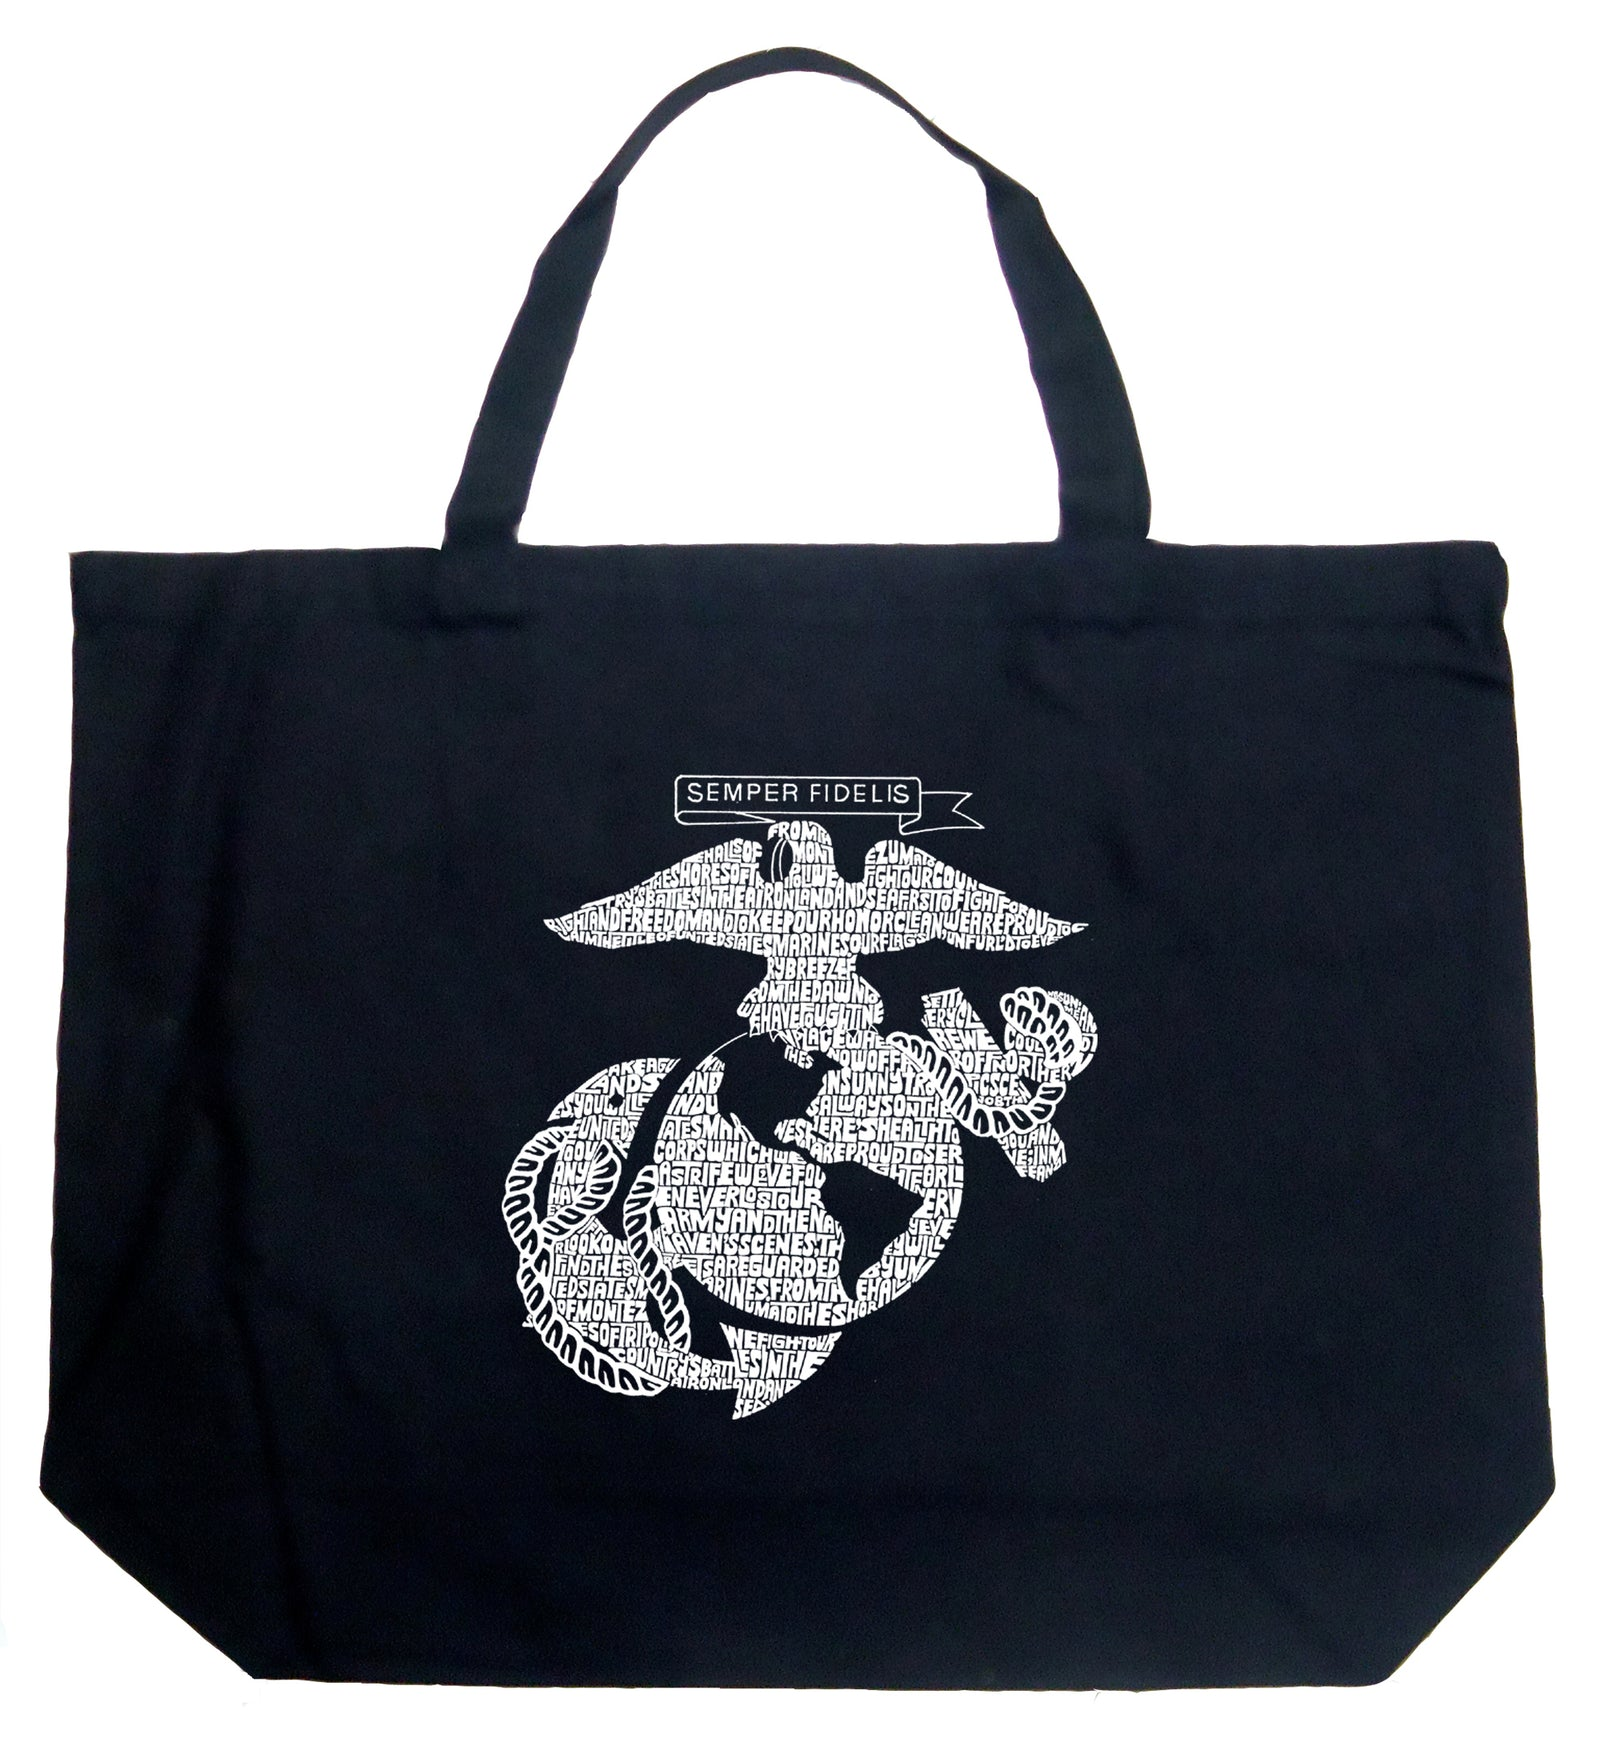 Large Tote Bag - LYRICS TO THE MARINES HYMN